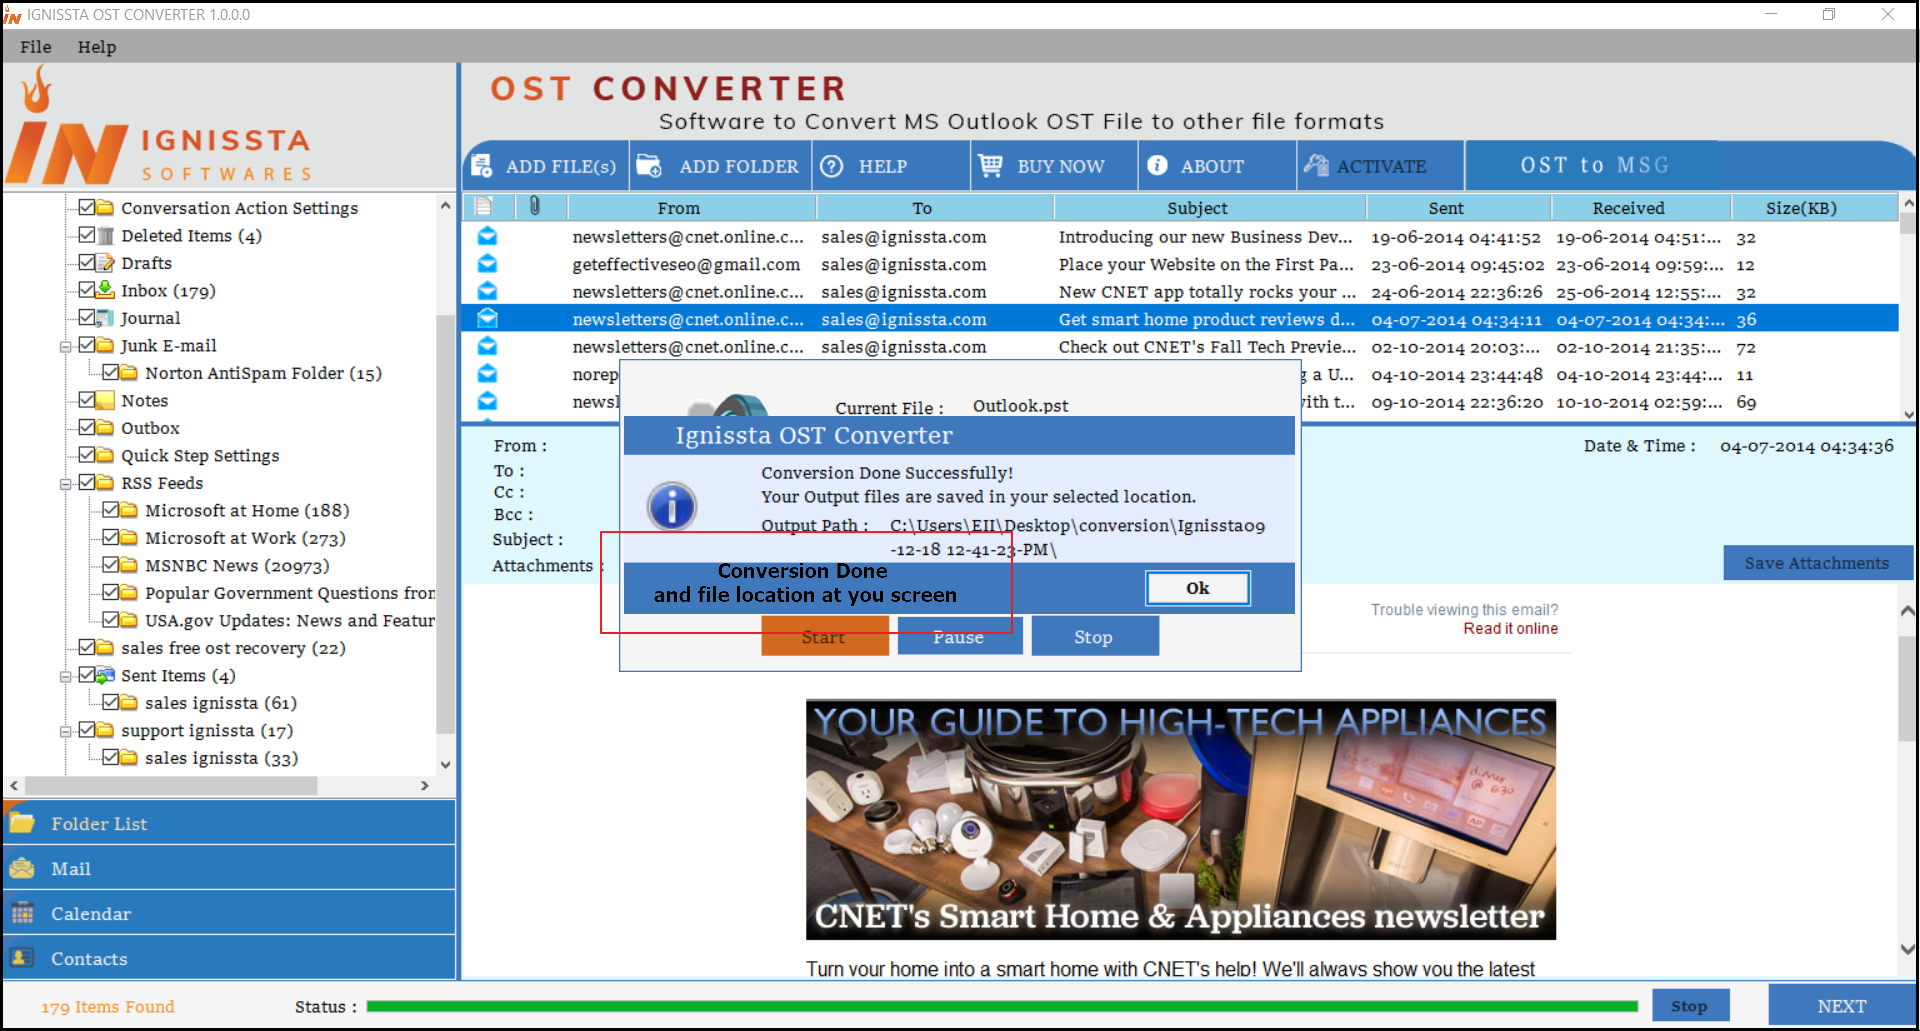 Successfully Completed OST to MBOX Conversion